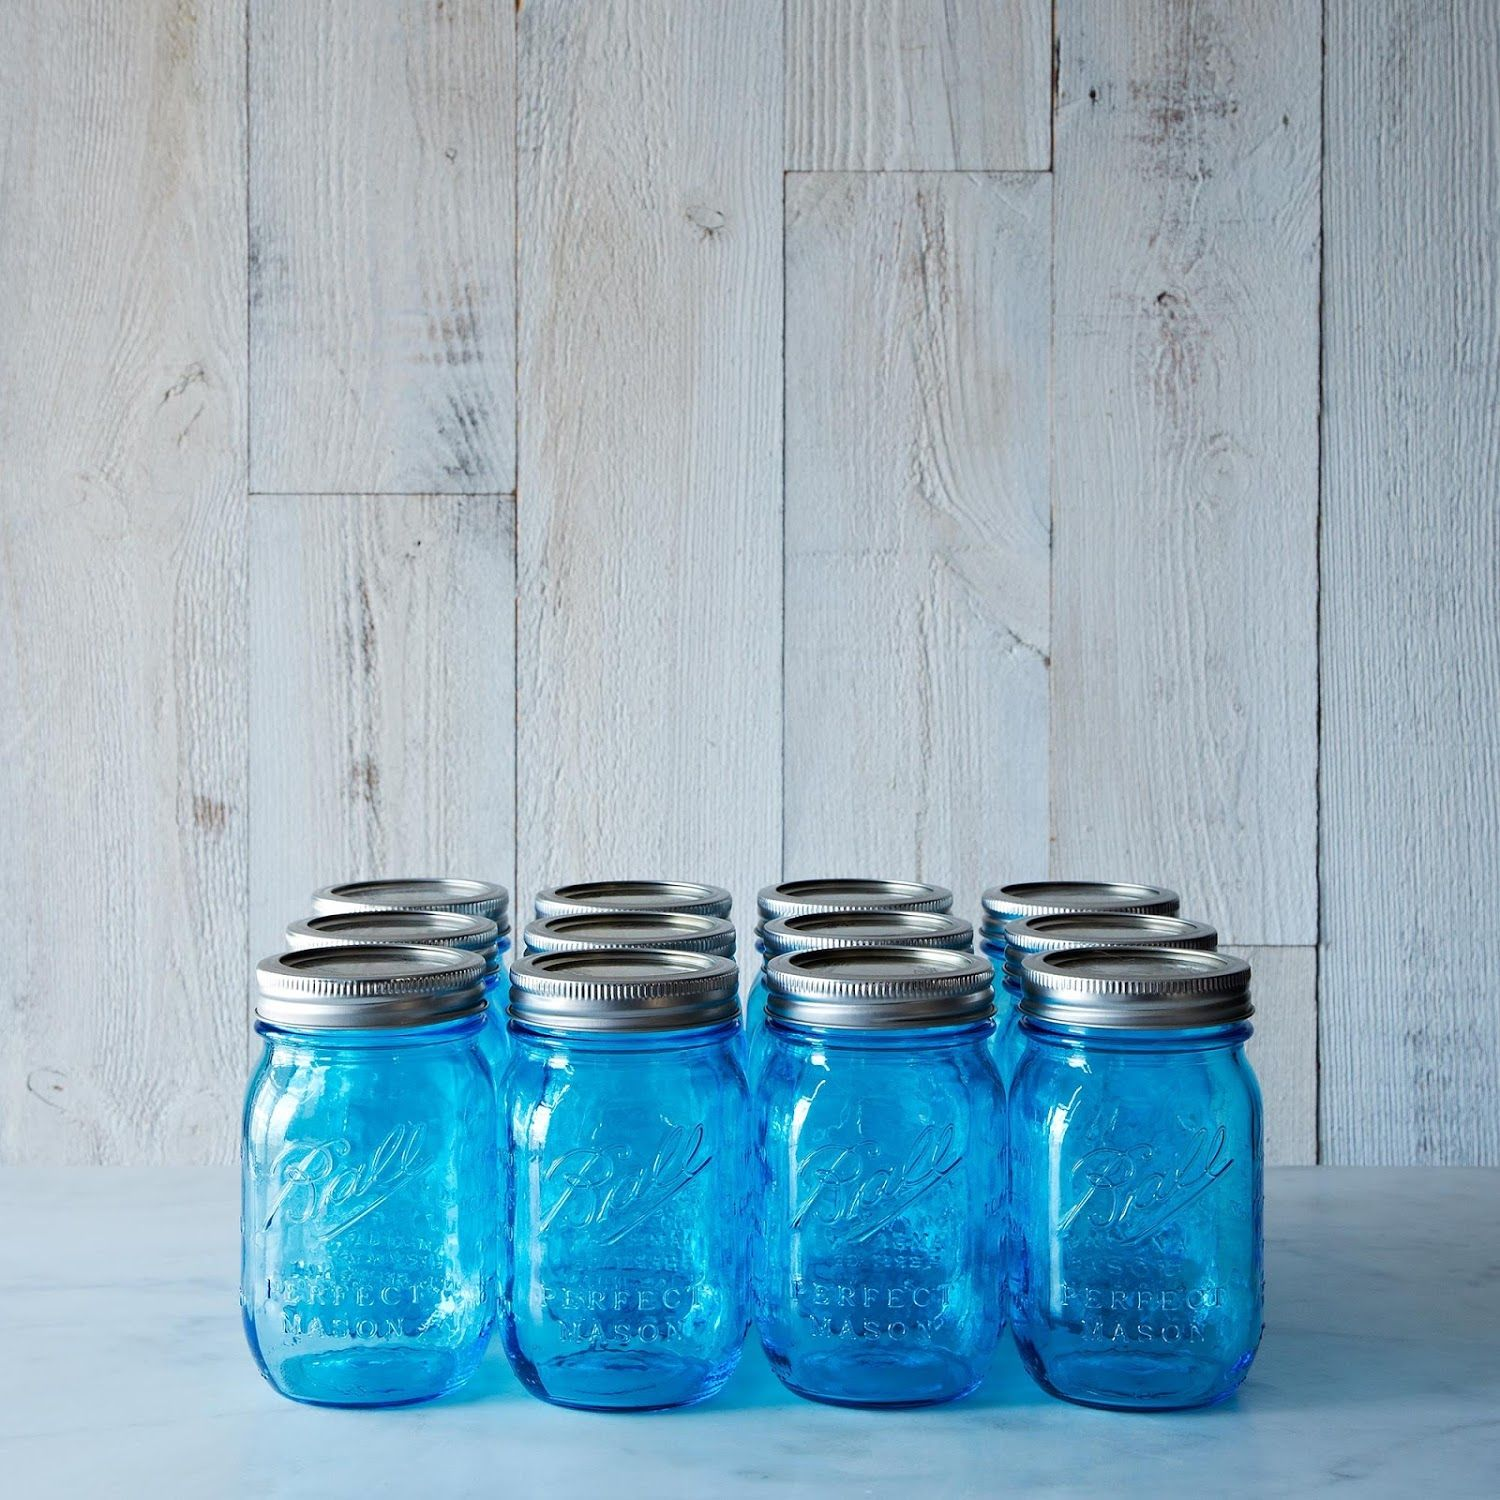 Blue Ball American Heritage Collection Pint Jars (Set of 12) | Wish ...